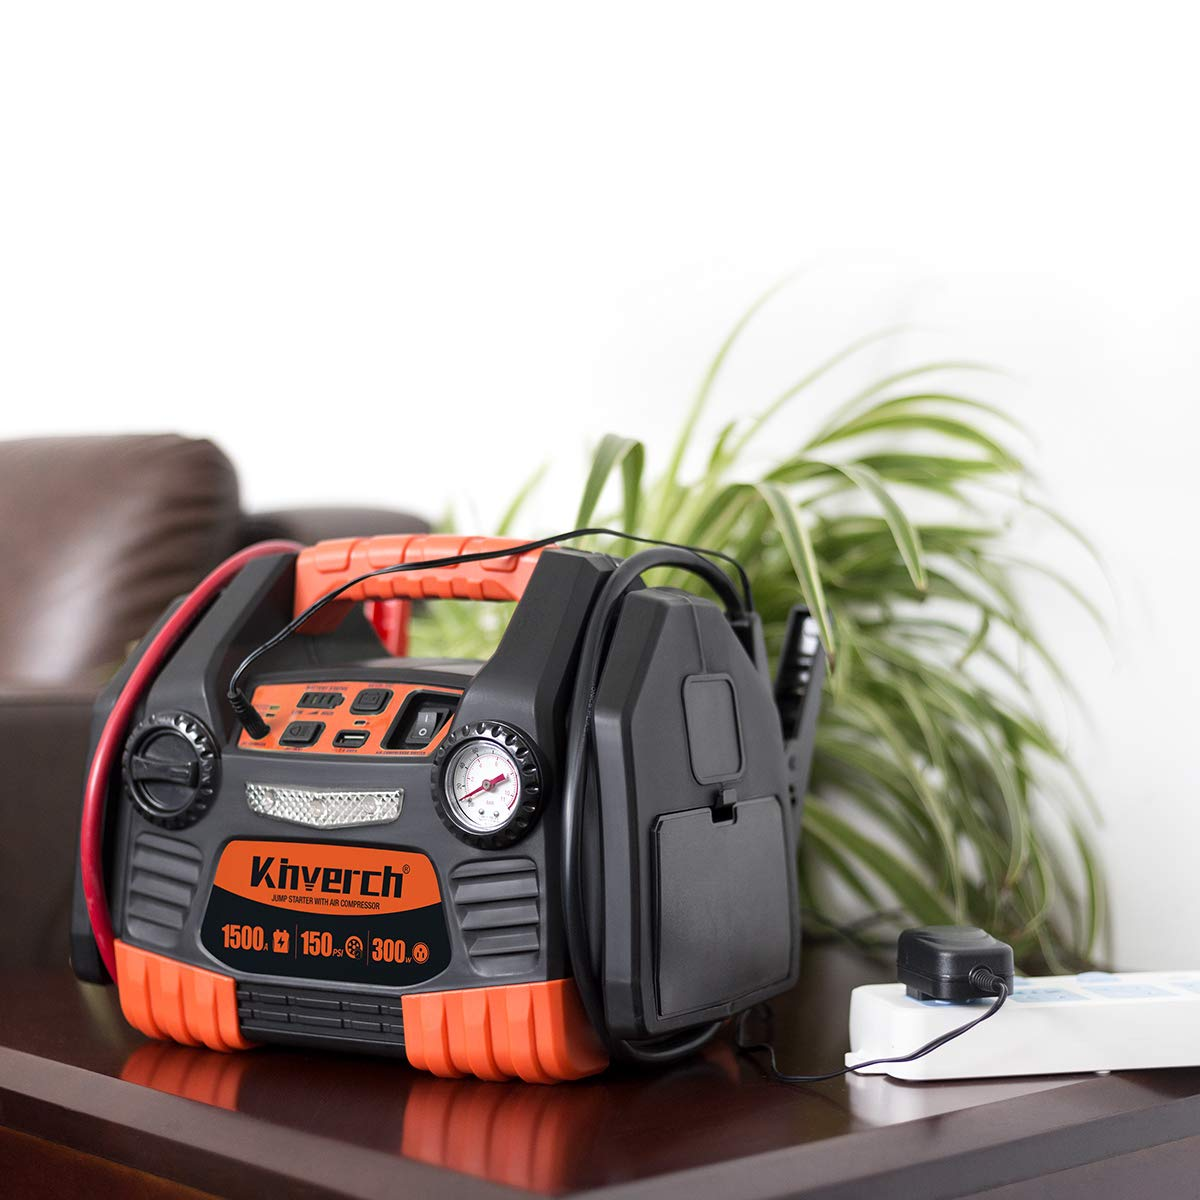 Kinverch Portable Power Station Jump Starter 1500 Peak/750 Instant Amps with 300W Inverter,150 PSI Air Compressor by kinverch (Image #5)